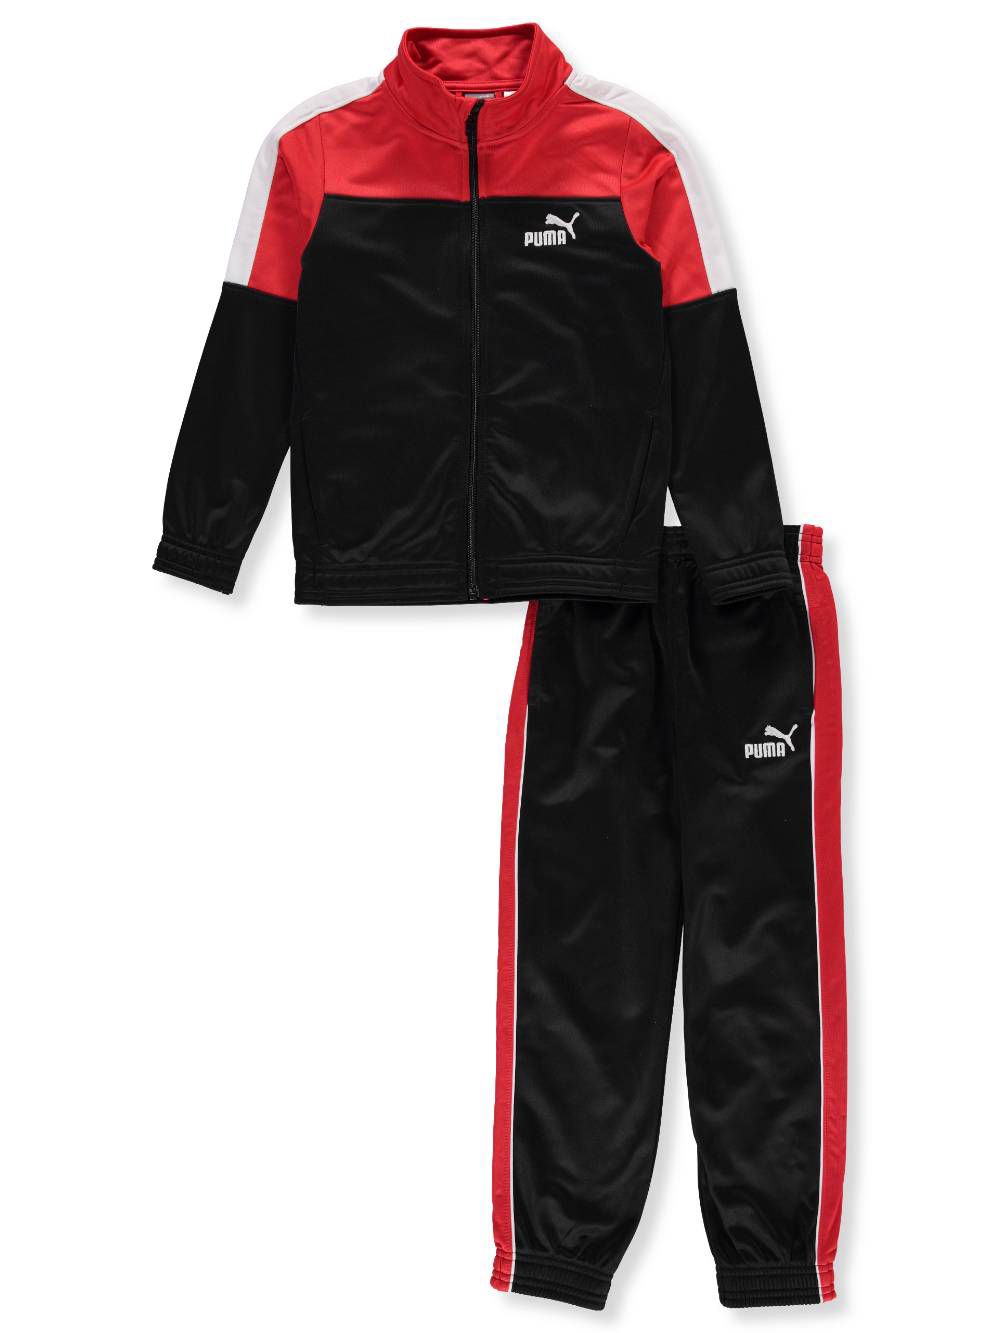 outlet online designer fashion new images of Puma Boys' 2-Piece Tracksuit Pants Set